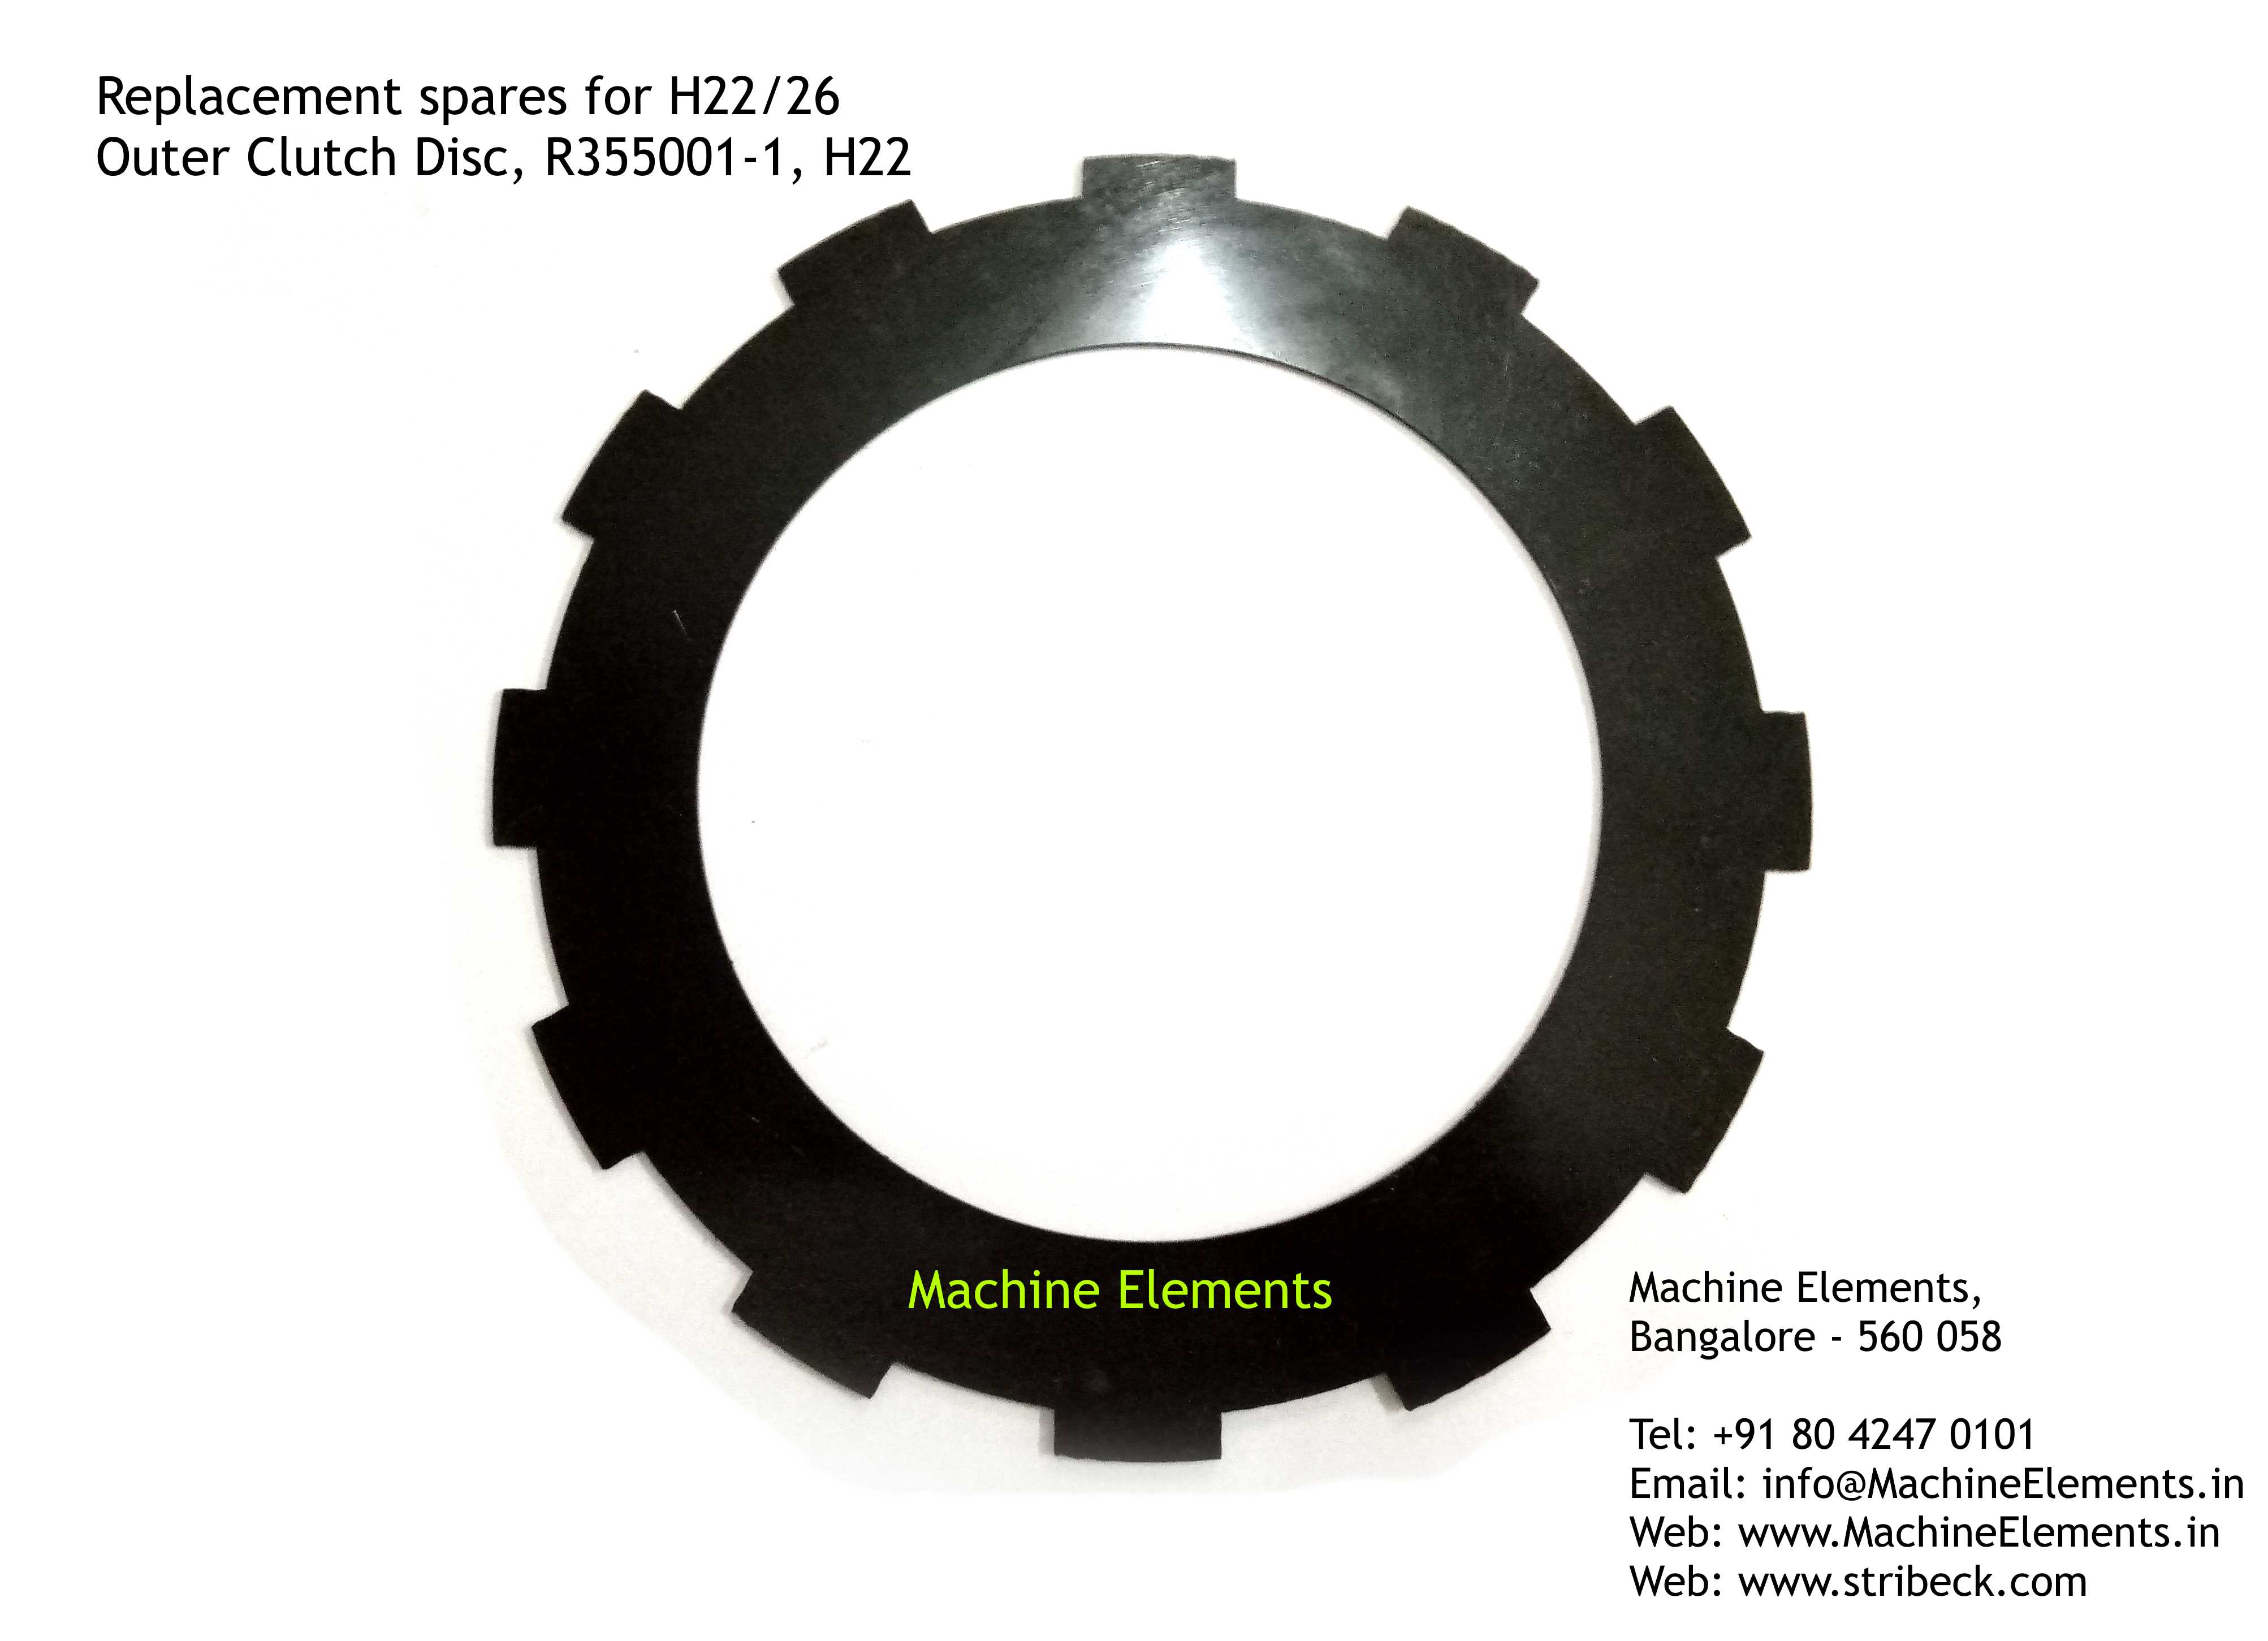 Outer Clutch Disc, H355001-1, H22